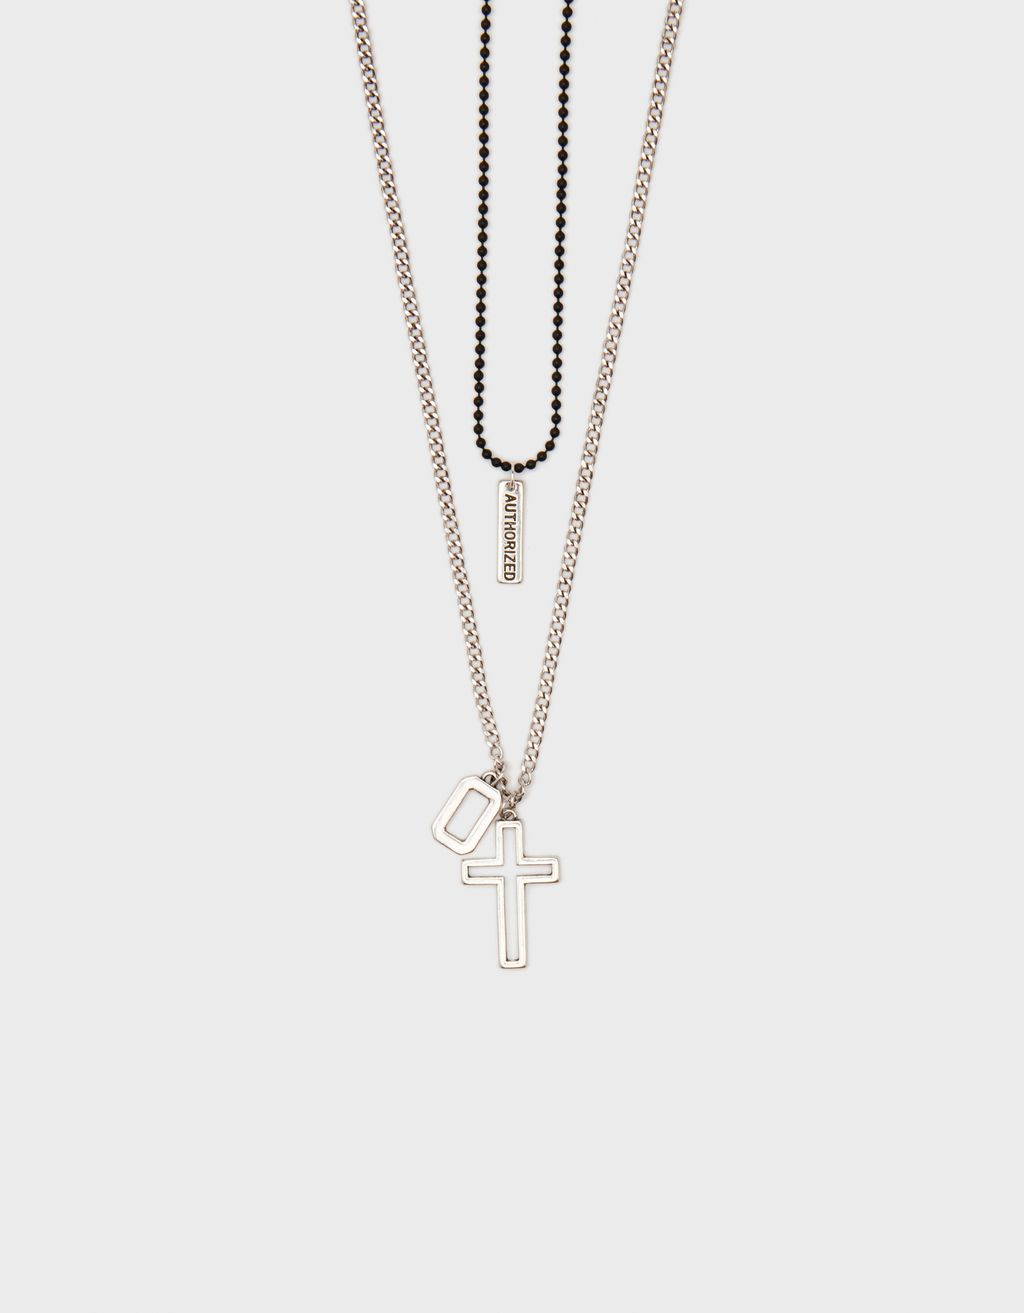 Set of necklaces with cross pendant